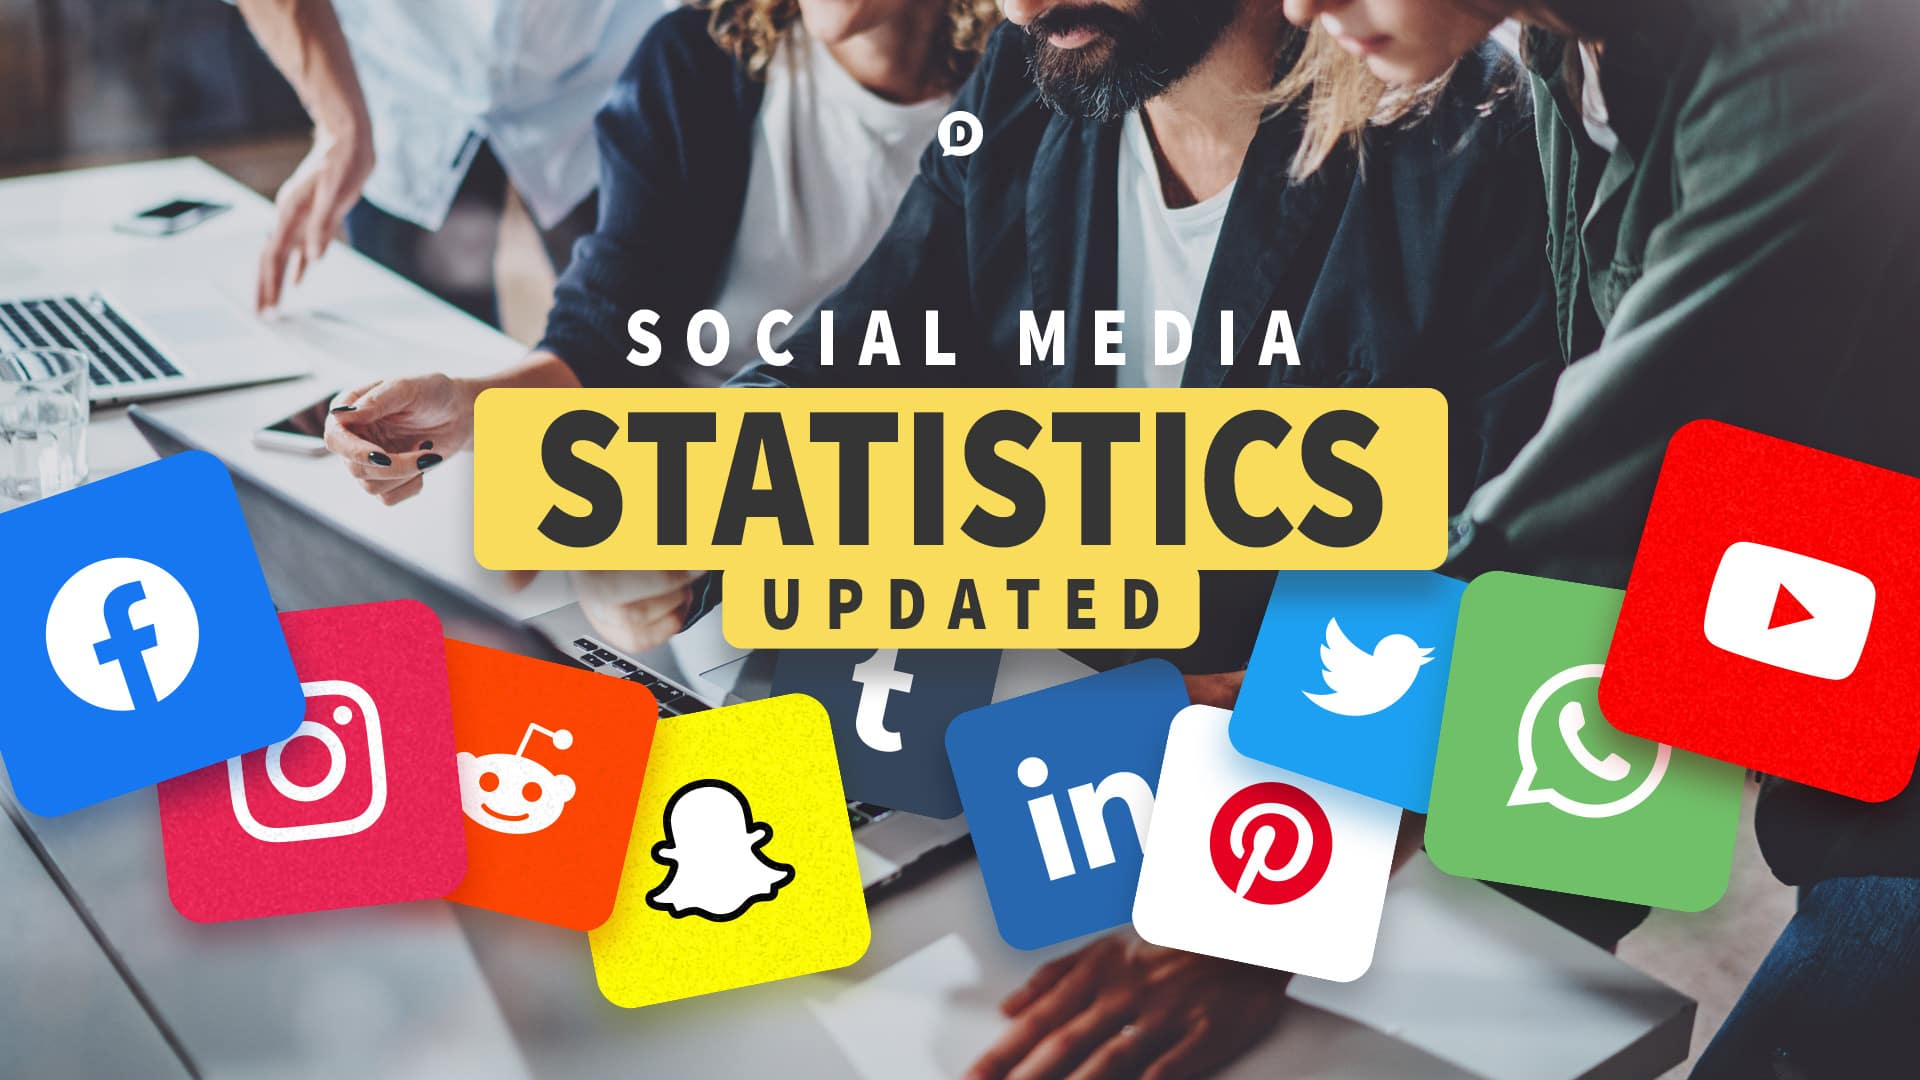 Social Media Statistics 2019: Top Networks By the Numbers